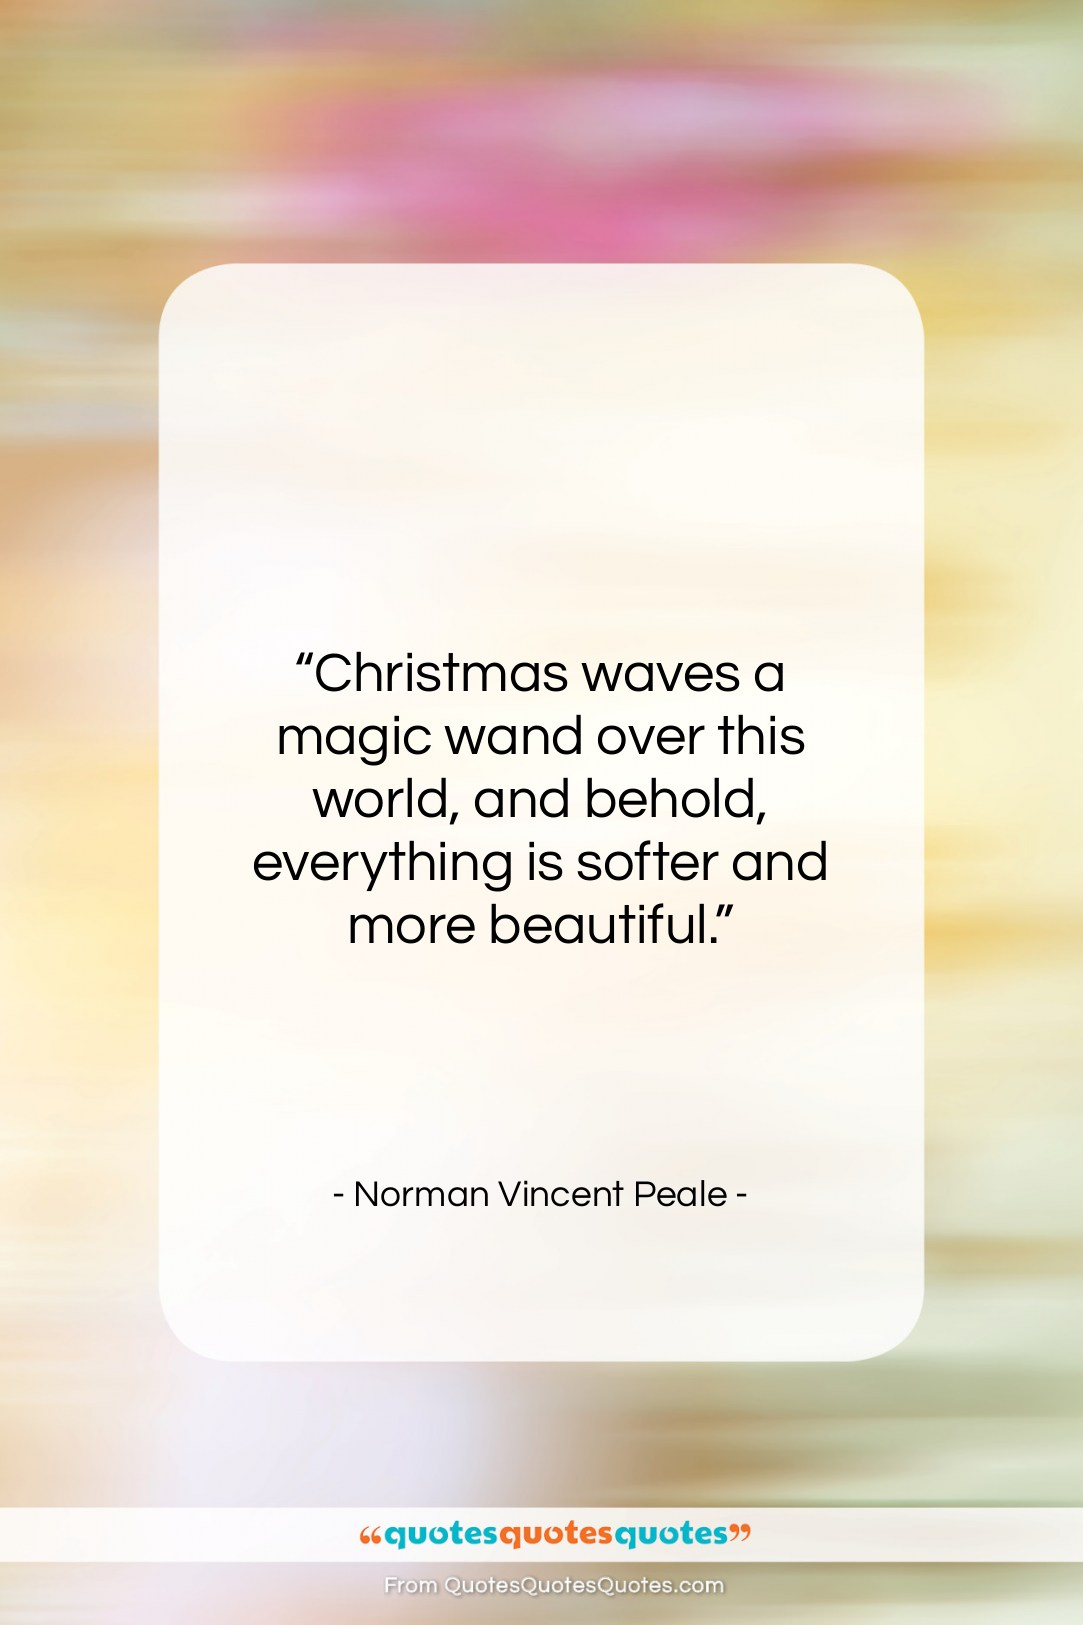 """Norman Vincent Peale quote: """"Christmas waves a magic wand over this…""""- at QuotesQuotesQuotes.com"""